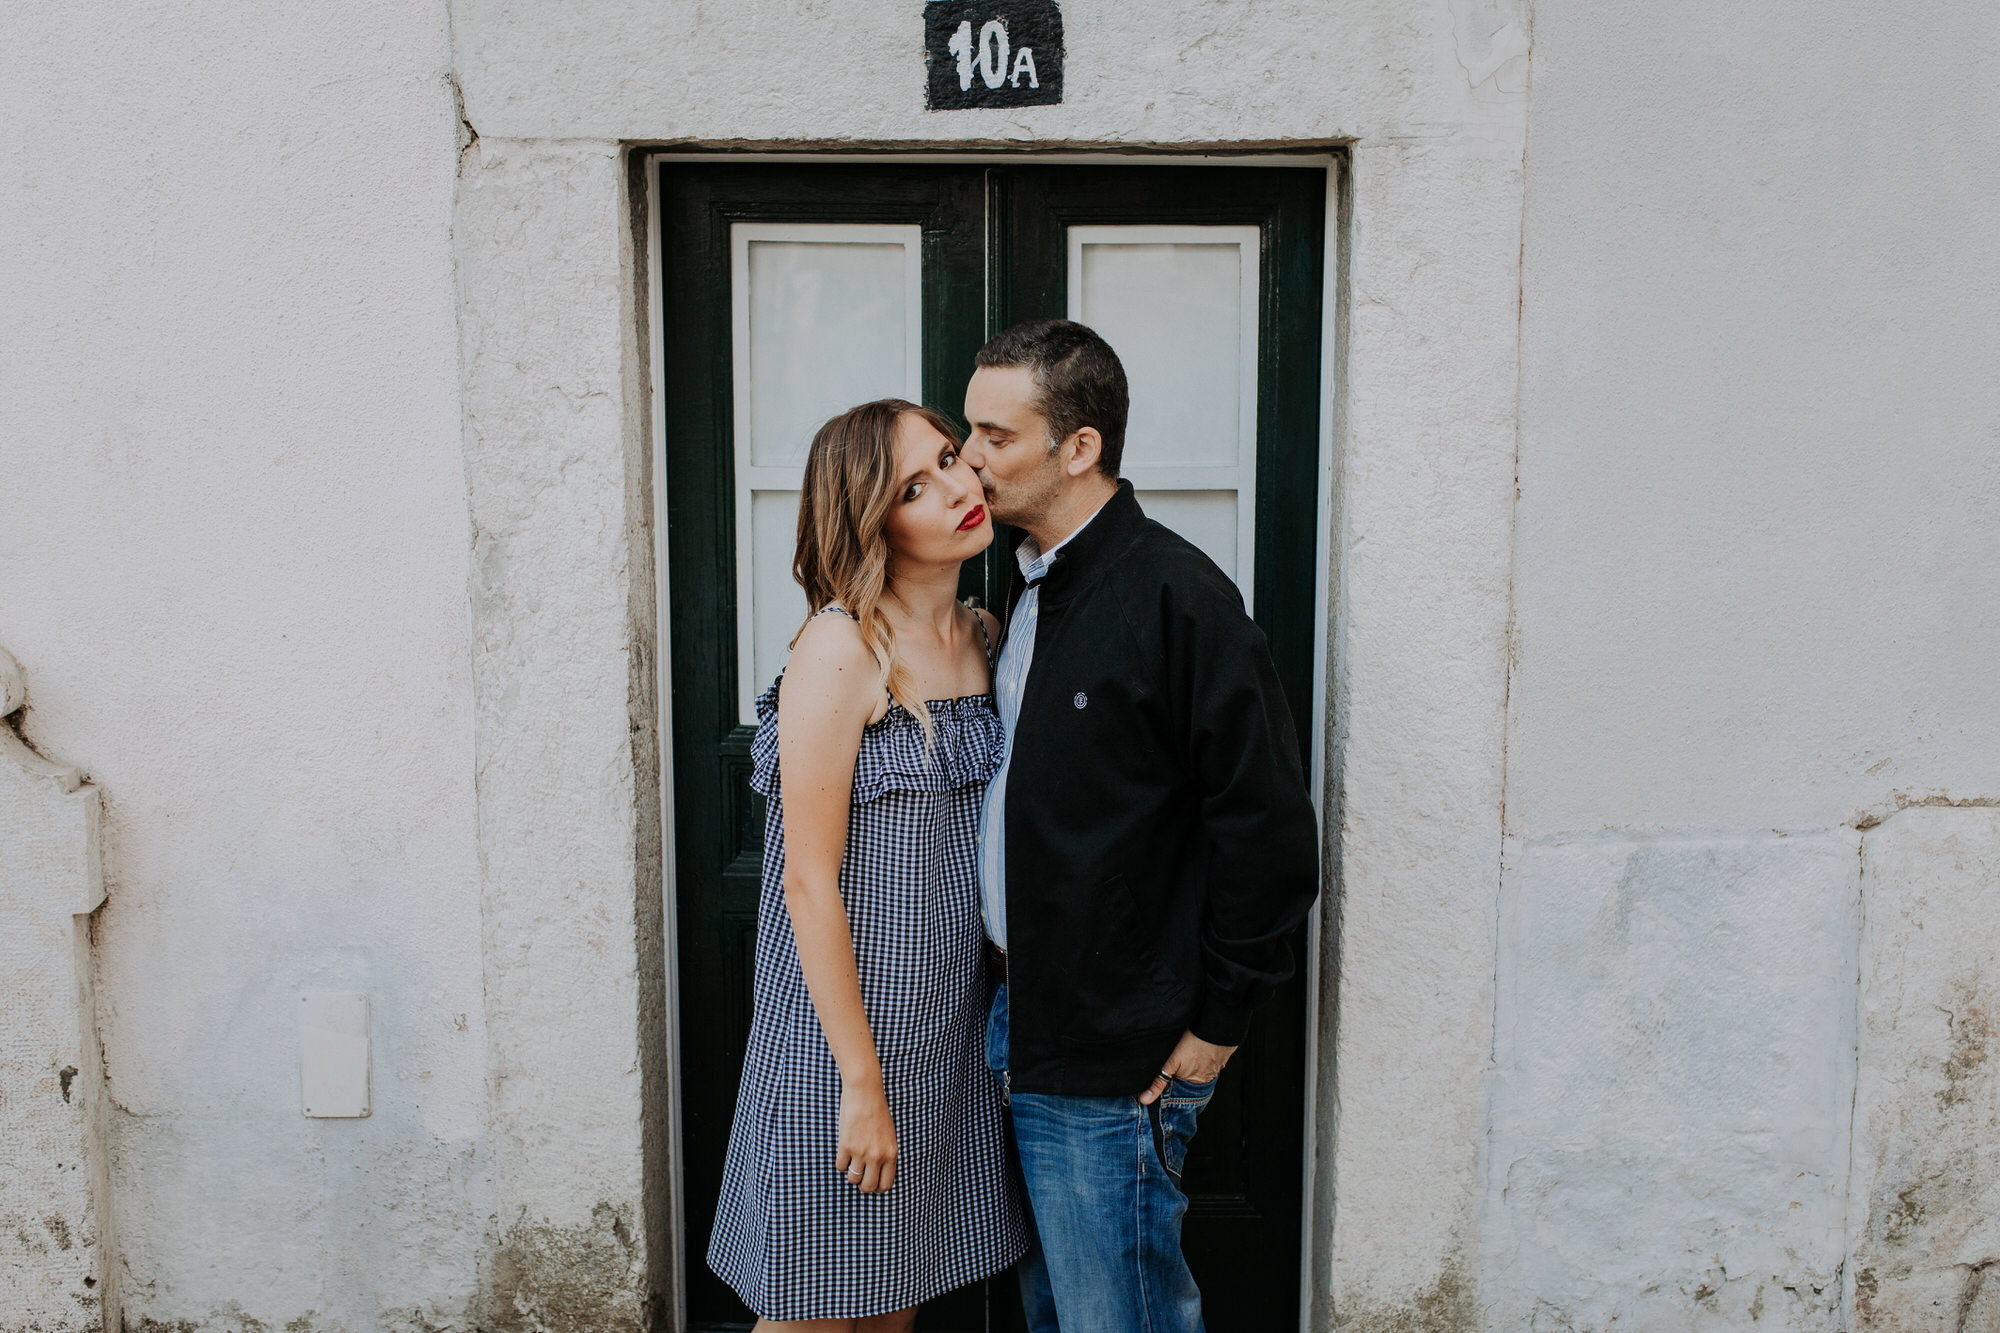 11 -sessao-noivado-engagement-session-alfama-lisboa-town-wedding-photography-photographer-natural-best-venue-planner-destination-filipe-santiago-fotografia